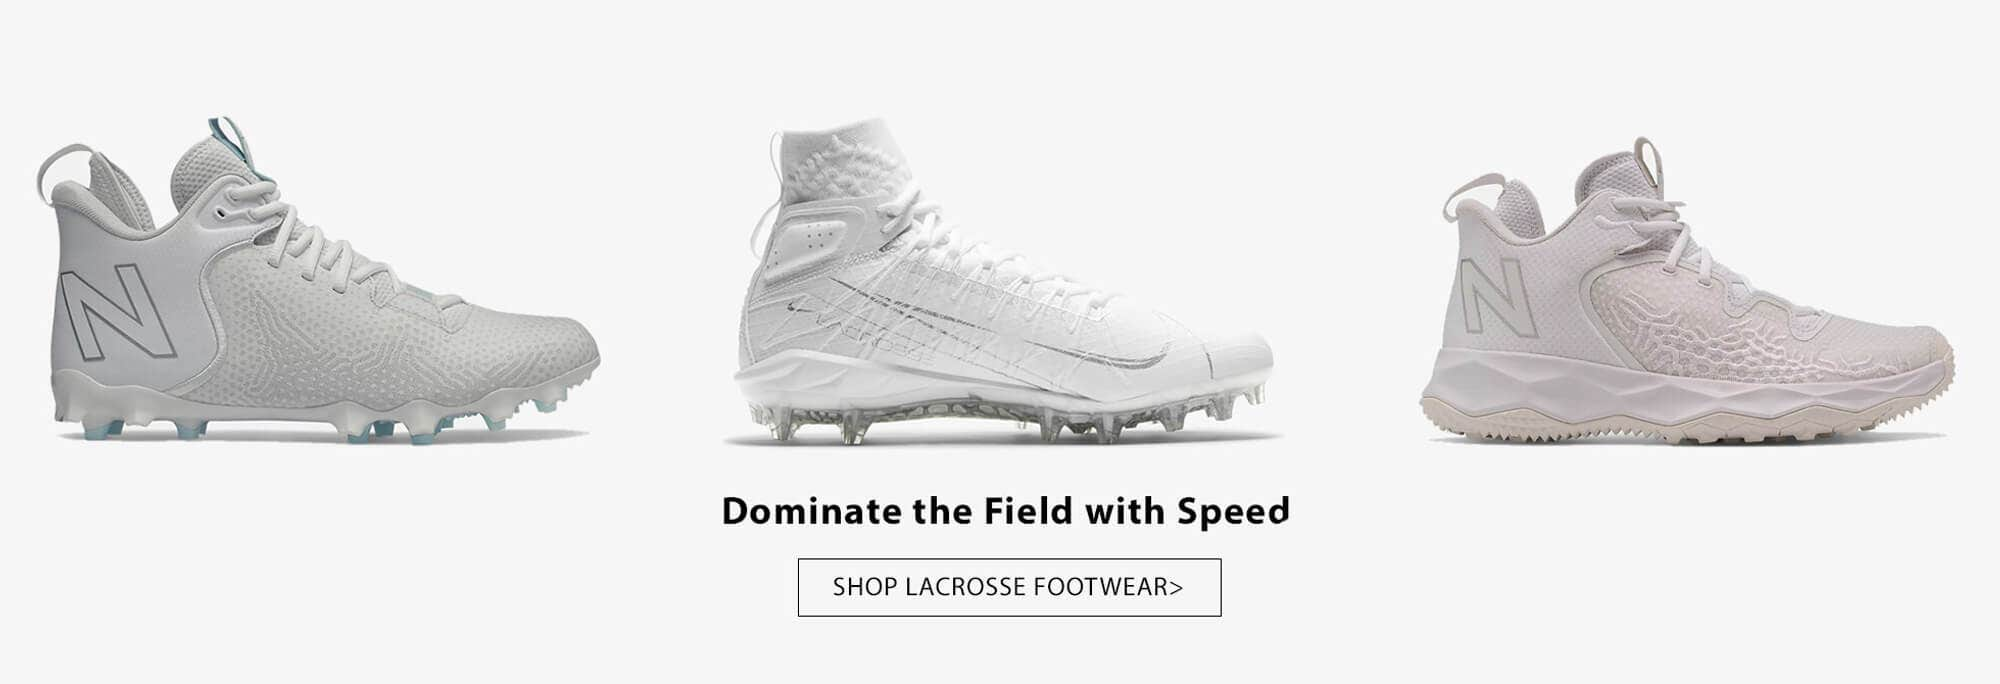 2021 Cleats - DESKTOP